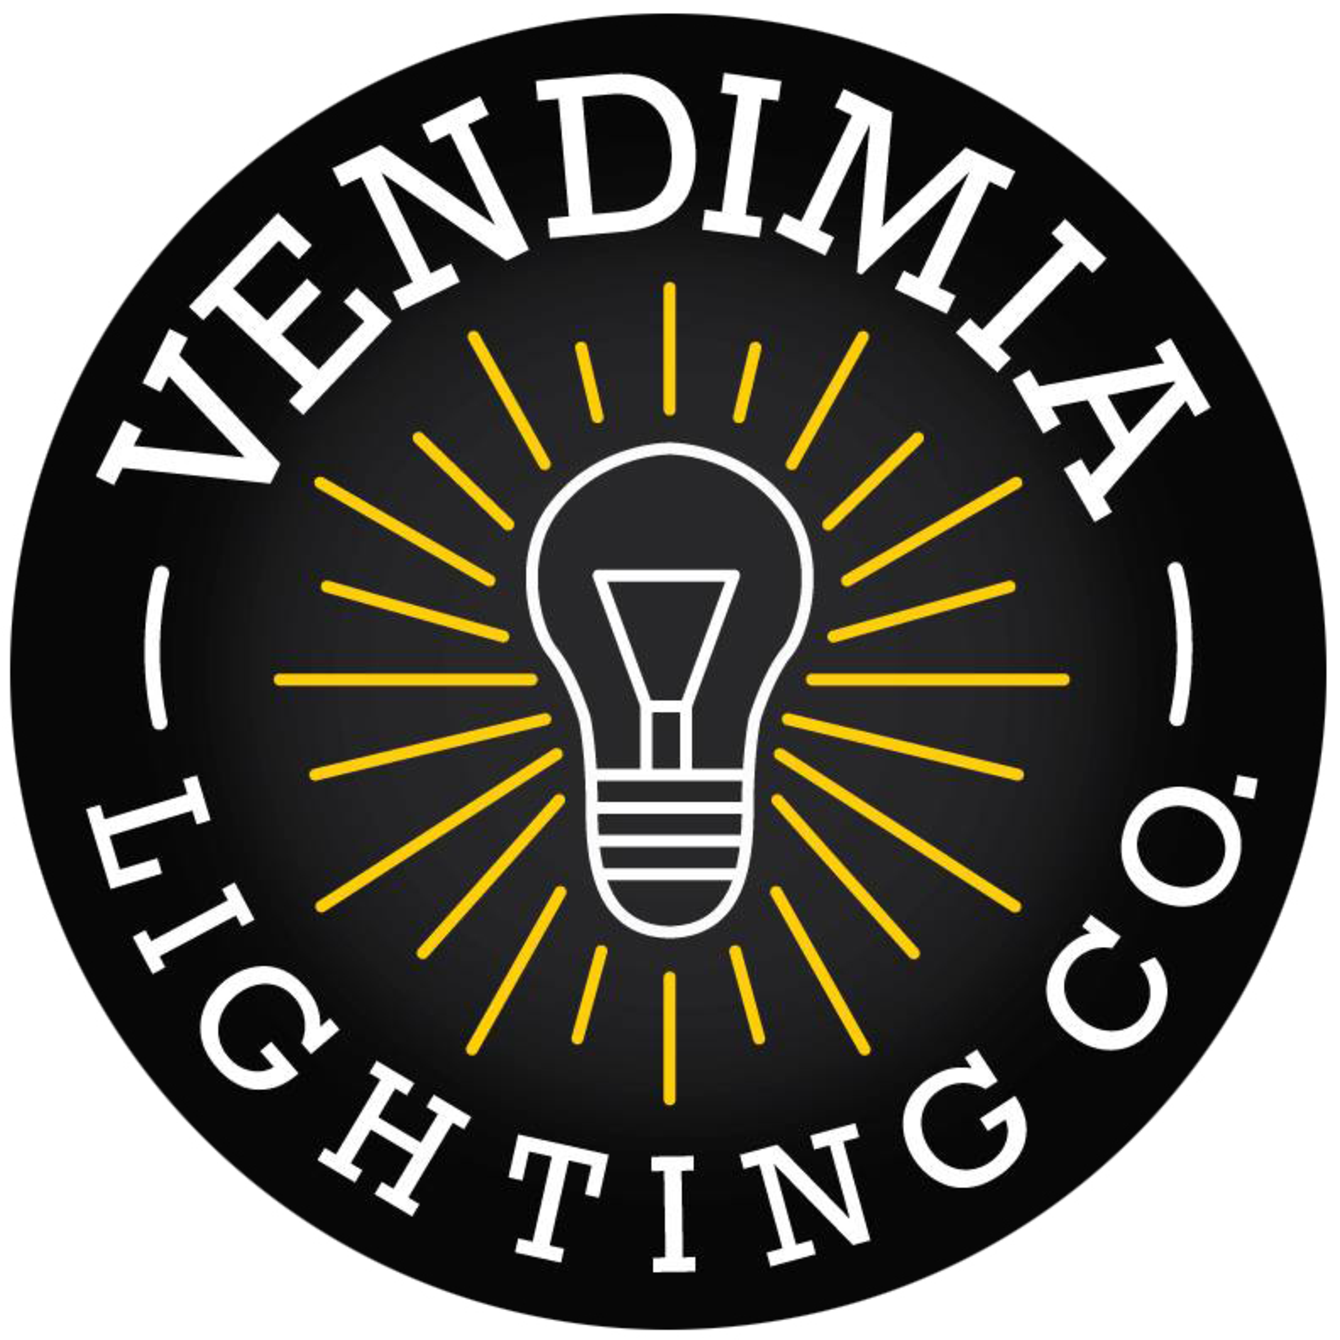 Vendimia Lighting Co.